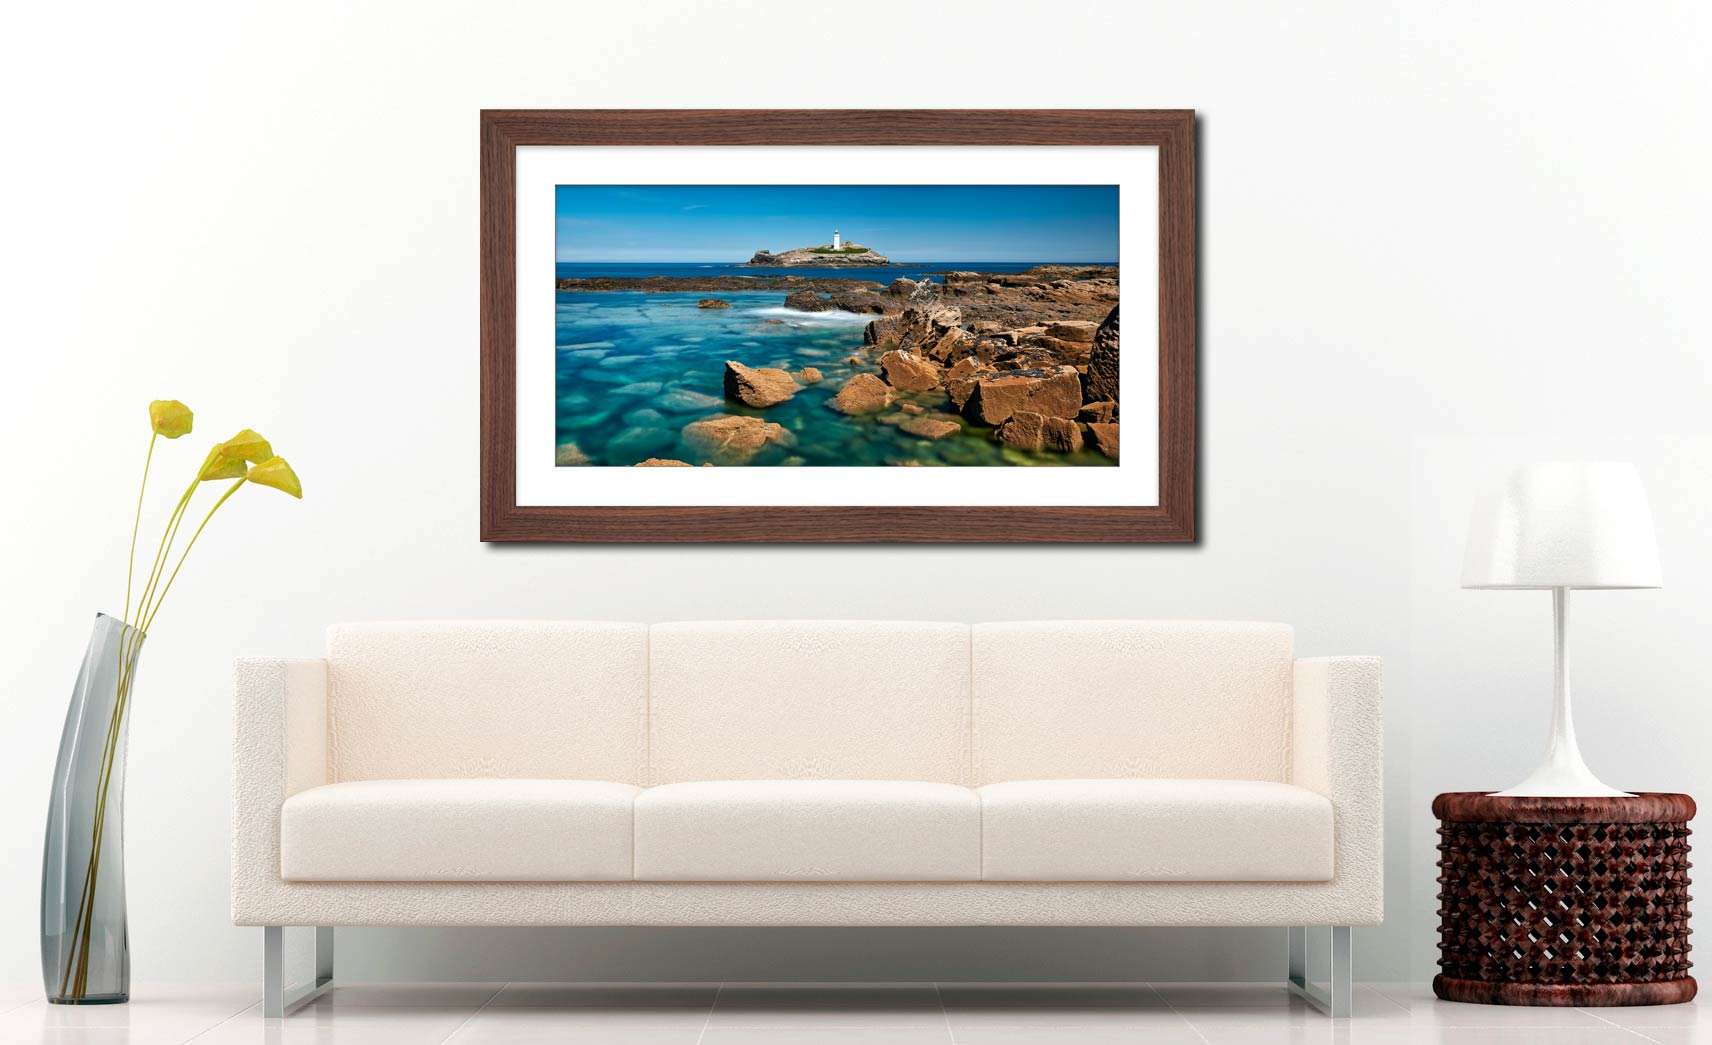 Calm Waters of Godrevy Point - Framed Print with Mount on Wall